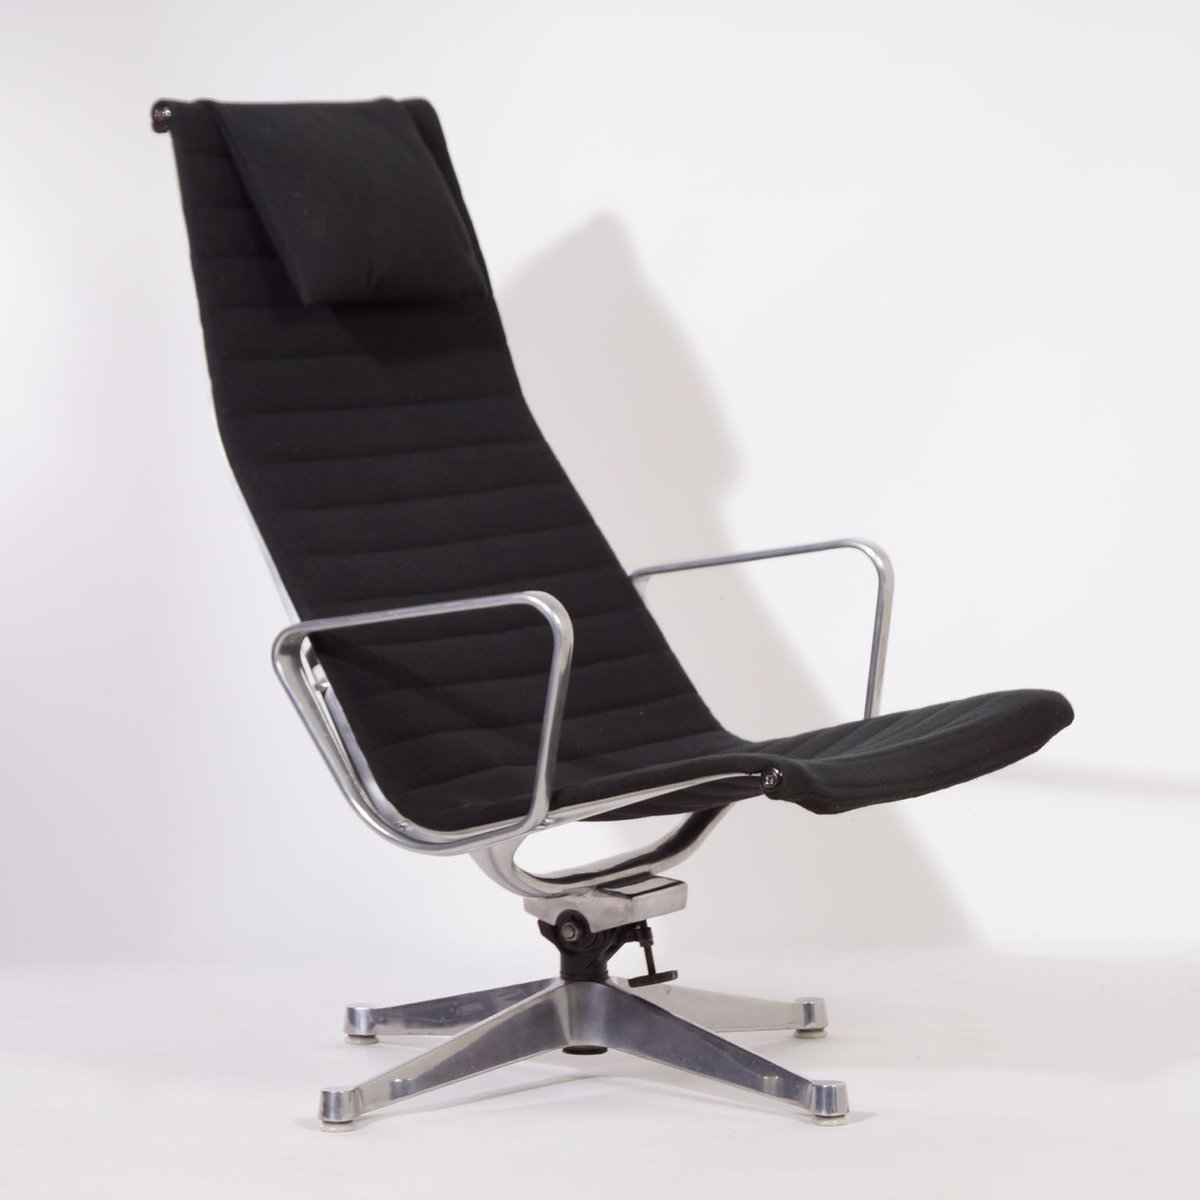 ea124 lounge chair by charles and ray eames for herman miller 1958 for sale at pamono. Black Bedroom Furniture Sets. Home Design Ideas